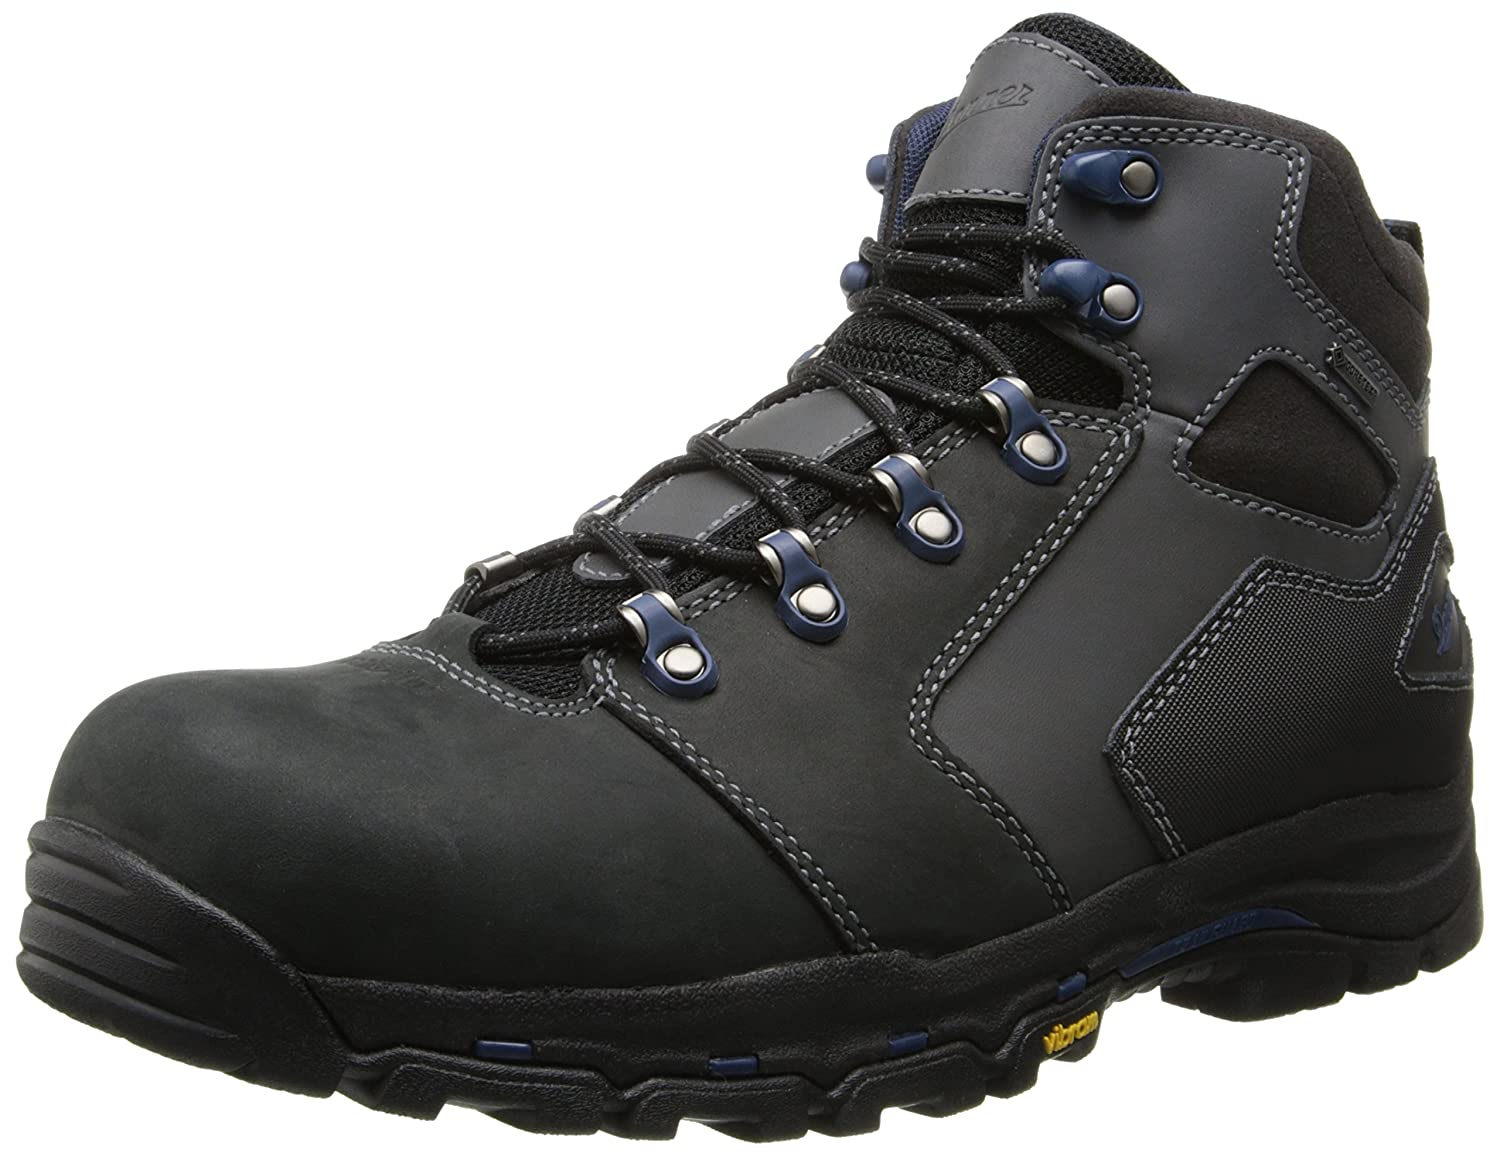 b4bfb163402 Danner Men's Vicious 4.5 Inch NMT Work Boot